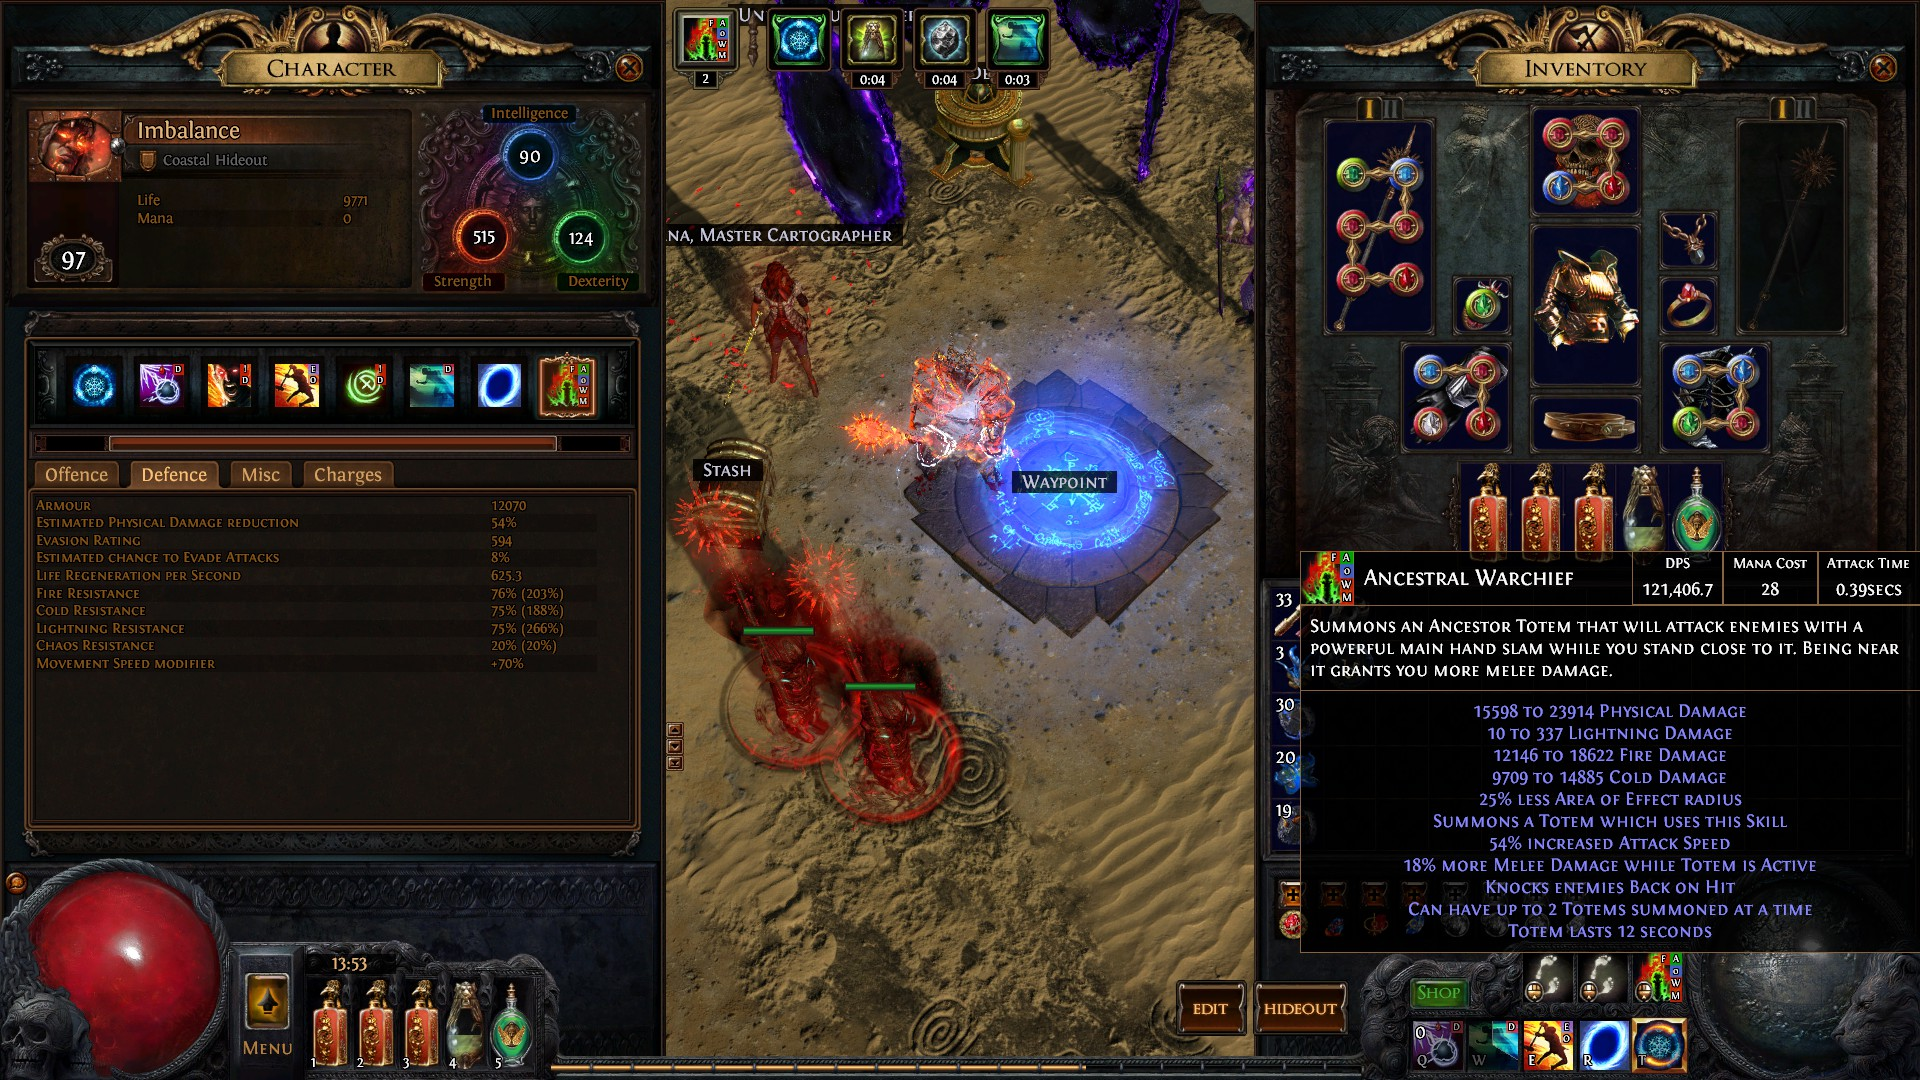 Forum - Marauder - [2 4] Imbalance's Ancestral Warchief (not level